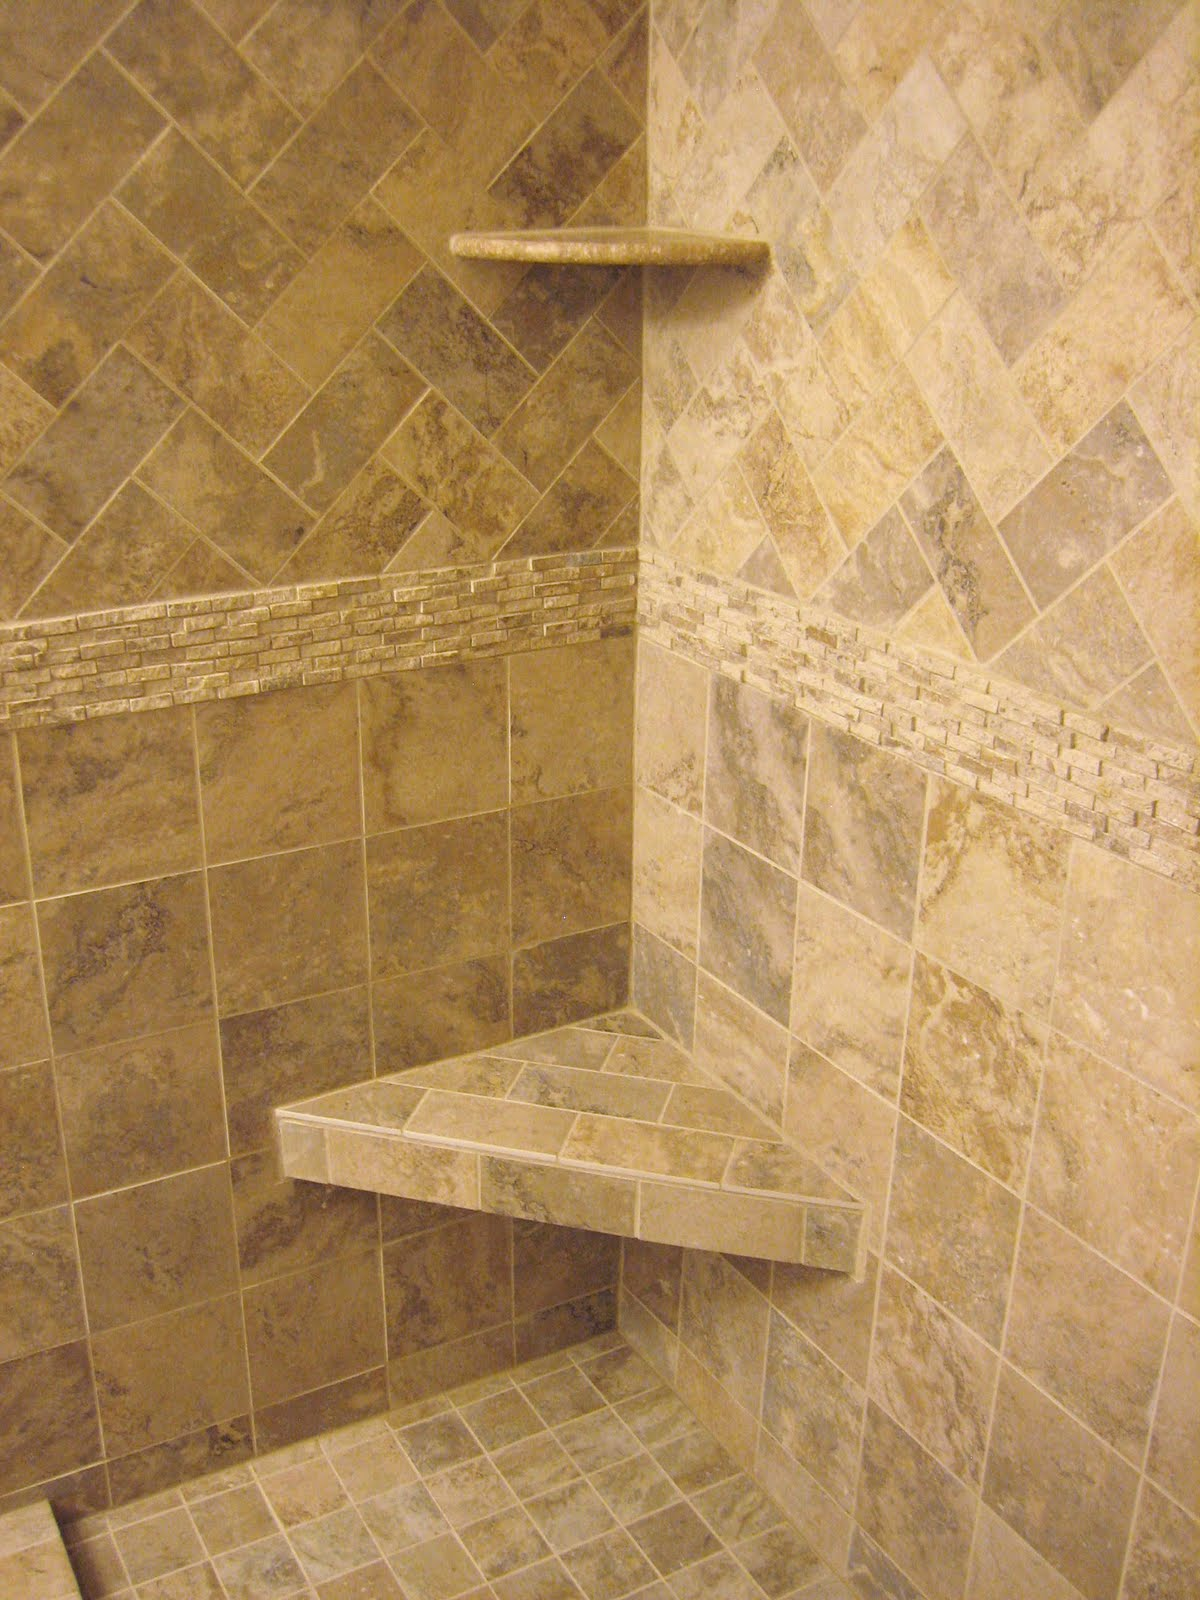 H winter showroom blog luxury master bath remodel athena for Tile for small bathroom